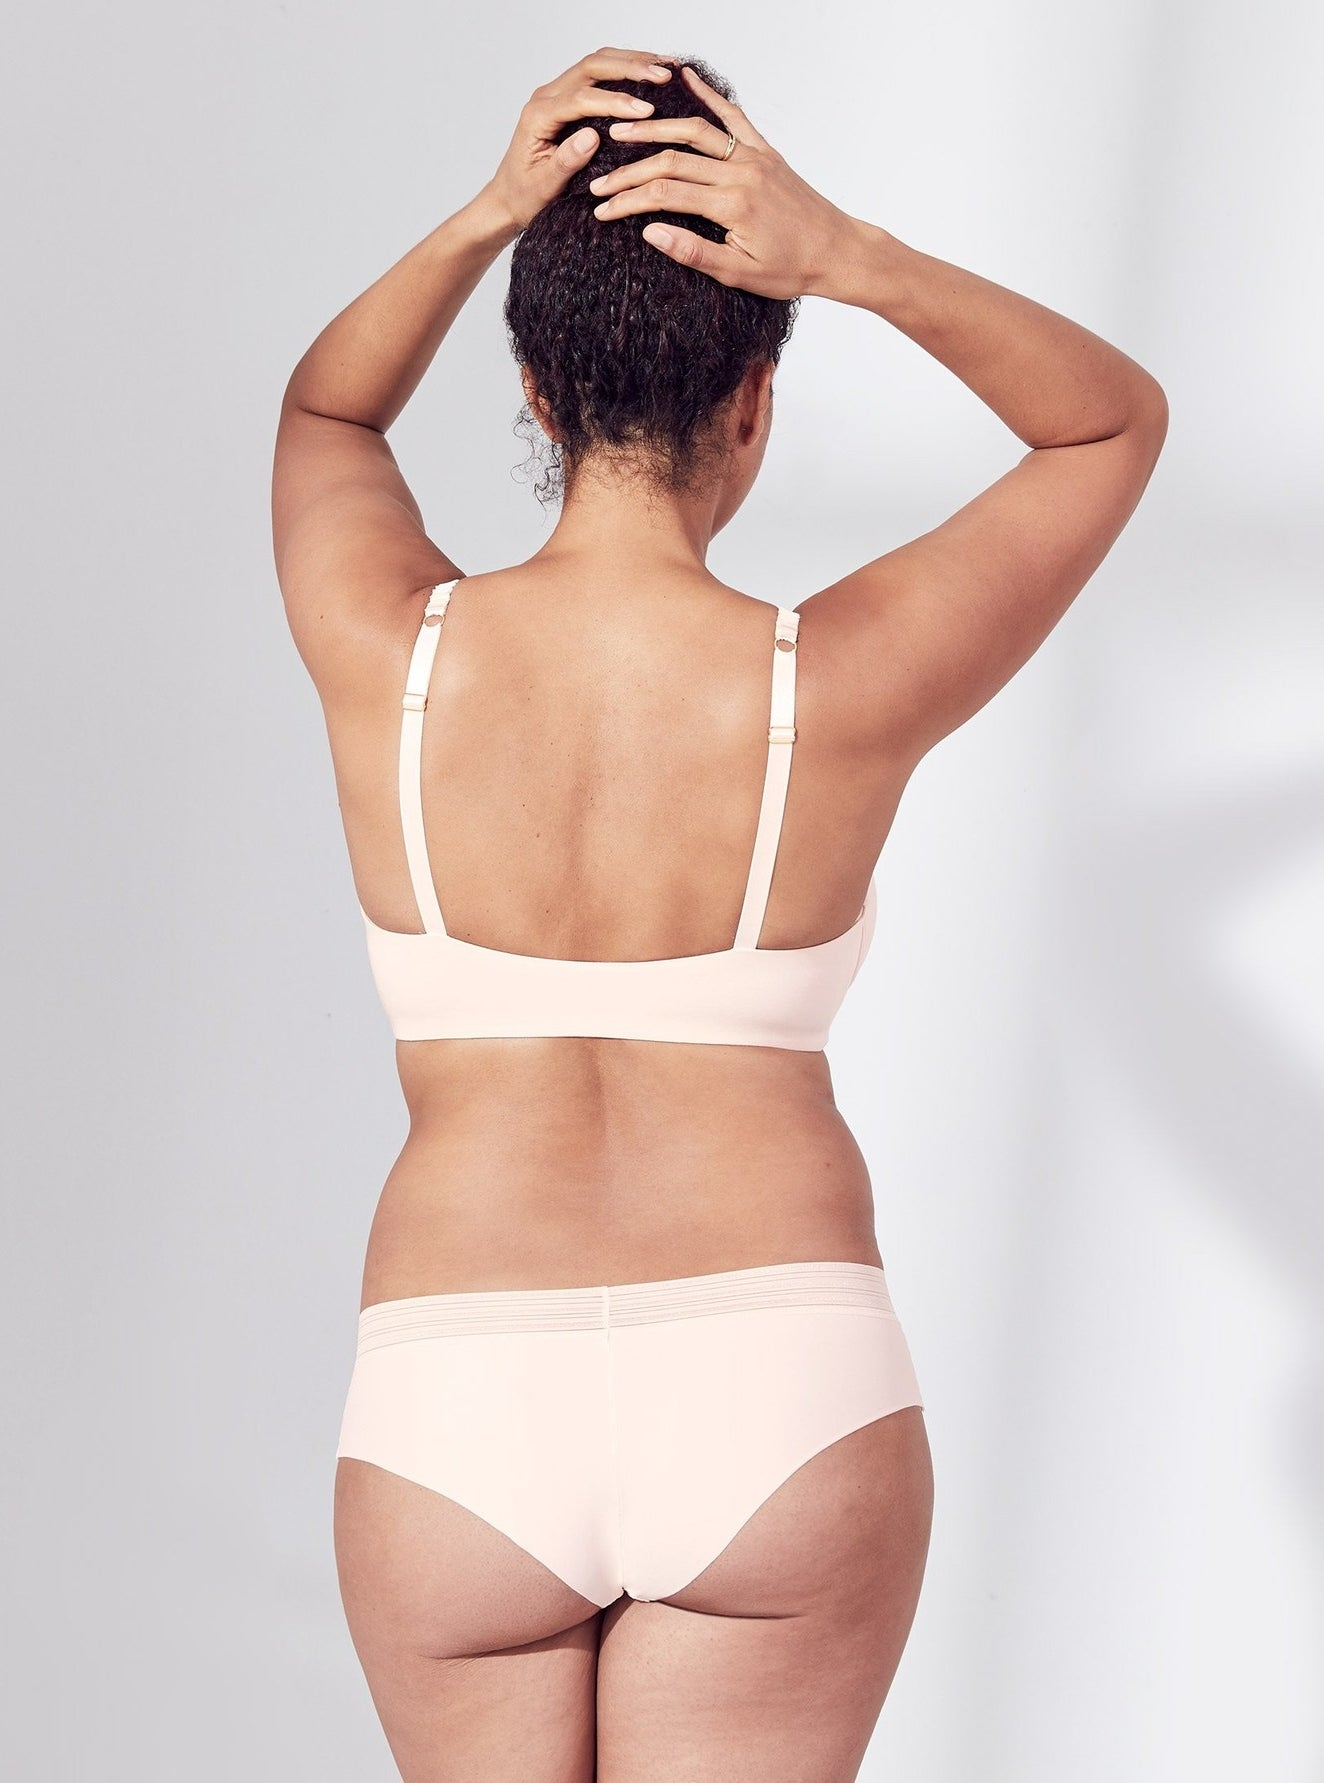 """Promising review: """"These are the most comfortable underwear ever. They never ride up, they don't show lines through any material, they are so smooth and soft, and they don't cut into your hips at all. I've bought six pairs!"""" —Shawna Get them from ThirdLove for $12 (or three pairs for $27, available in sizes XS-XXL and in eight colors)."""